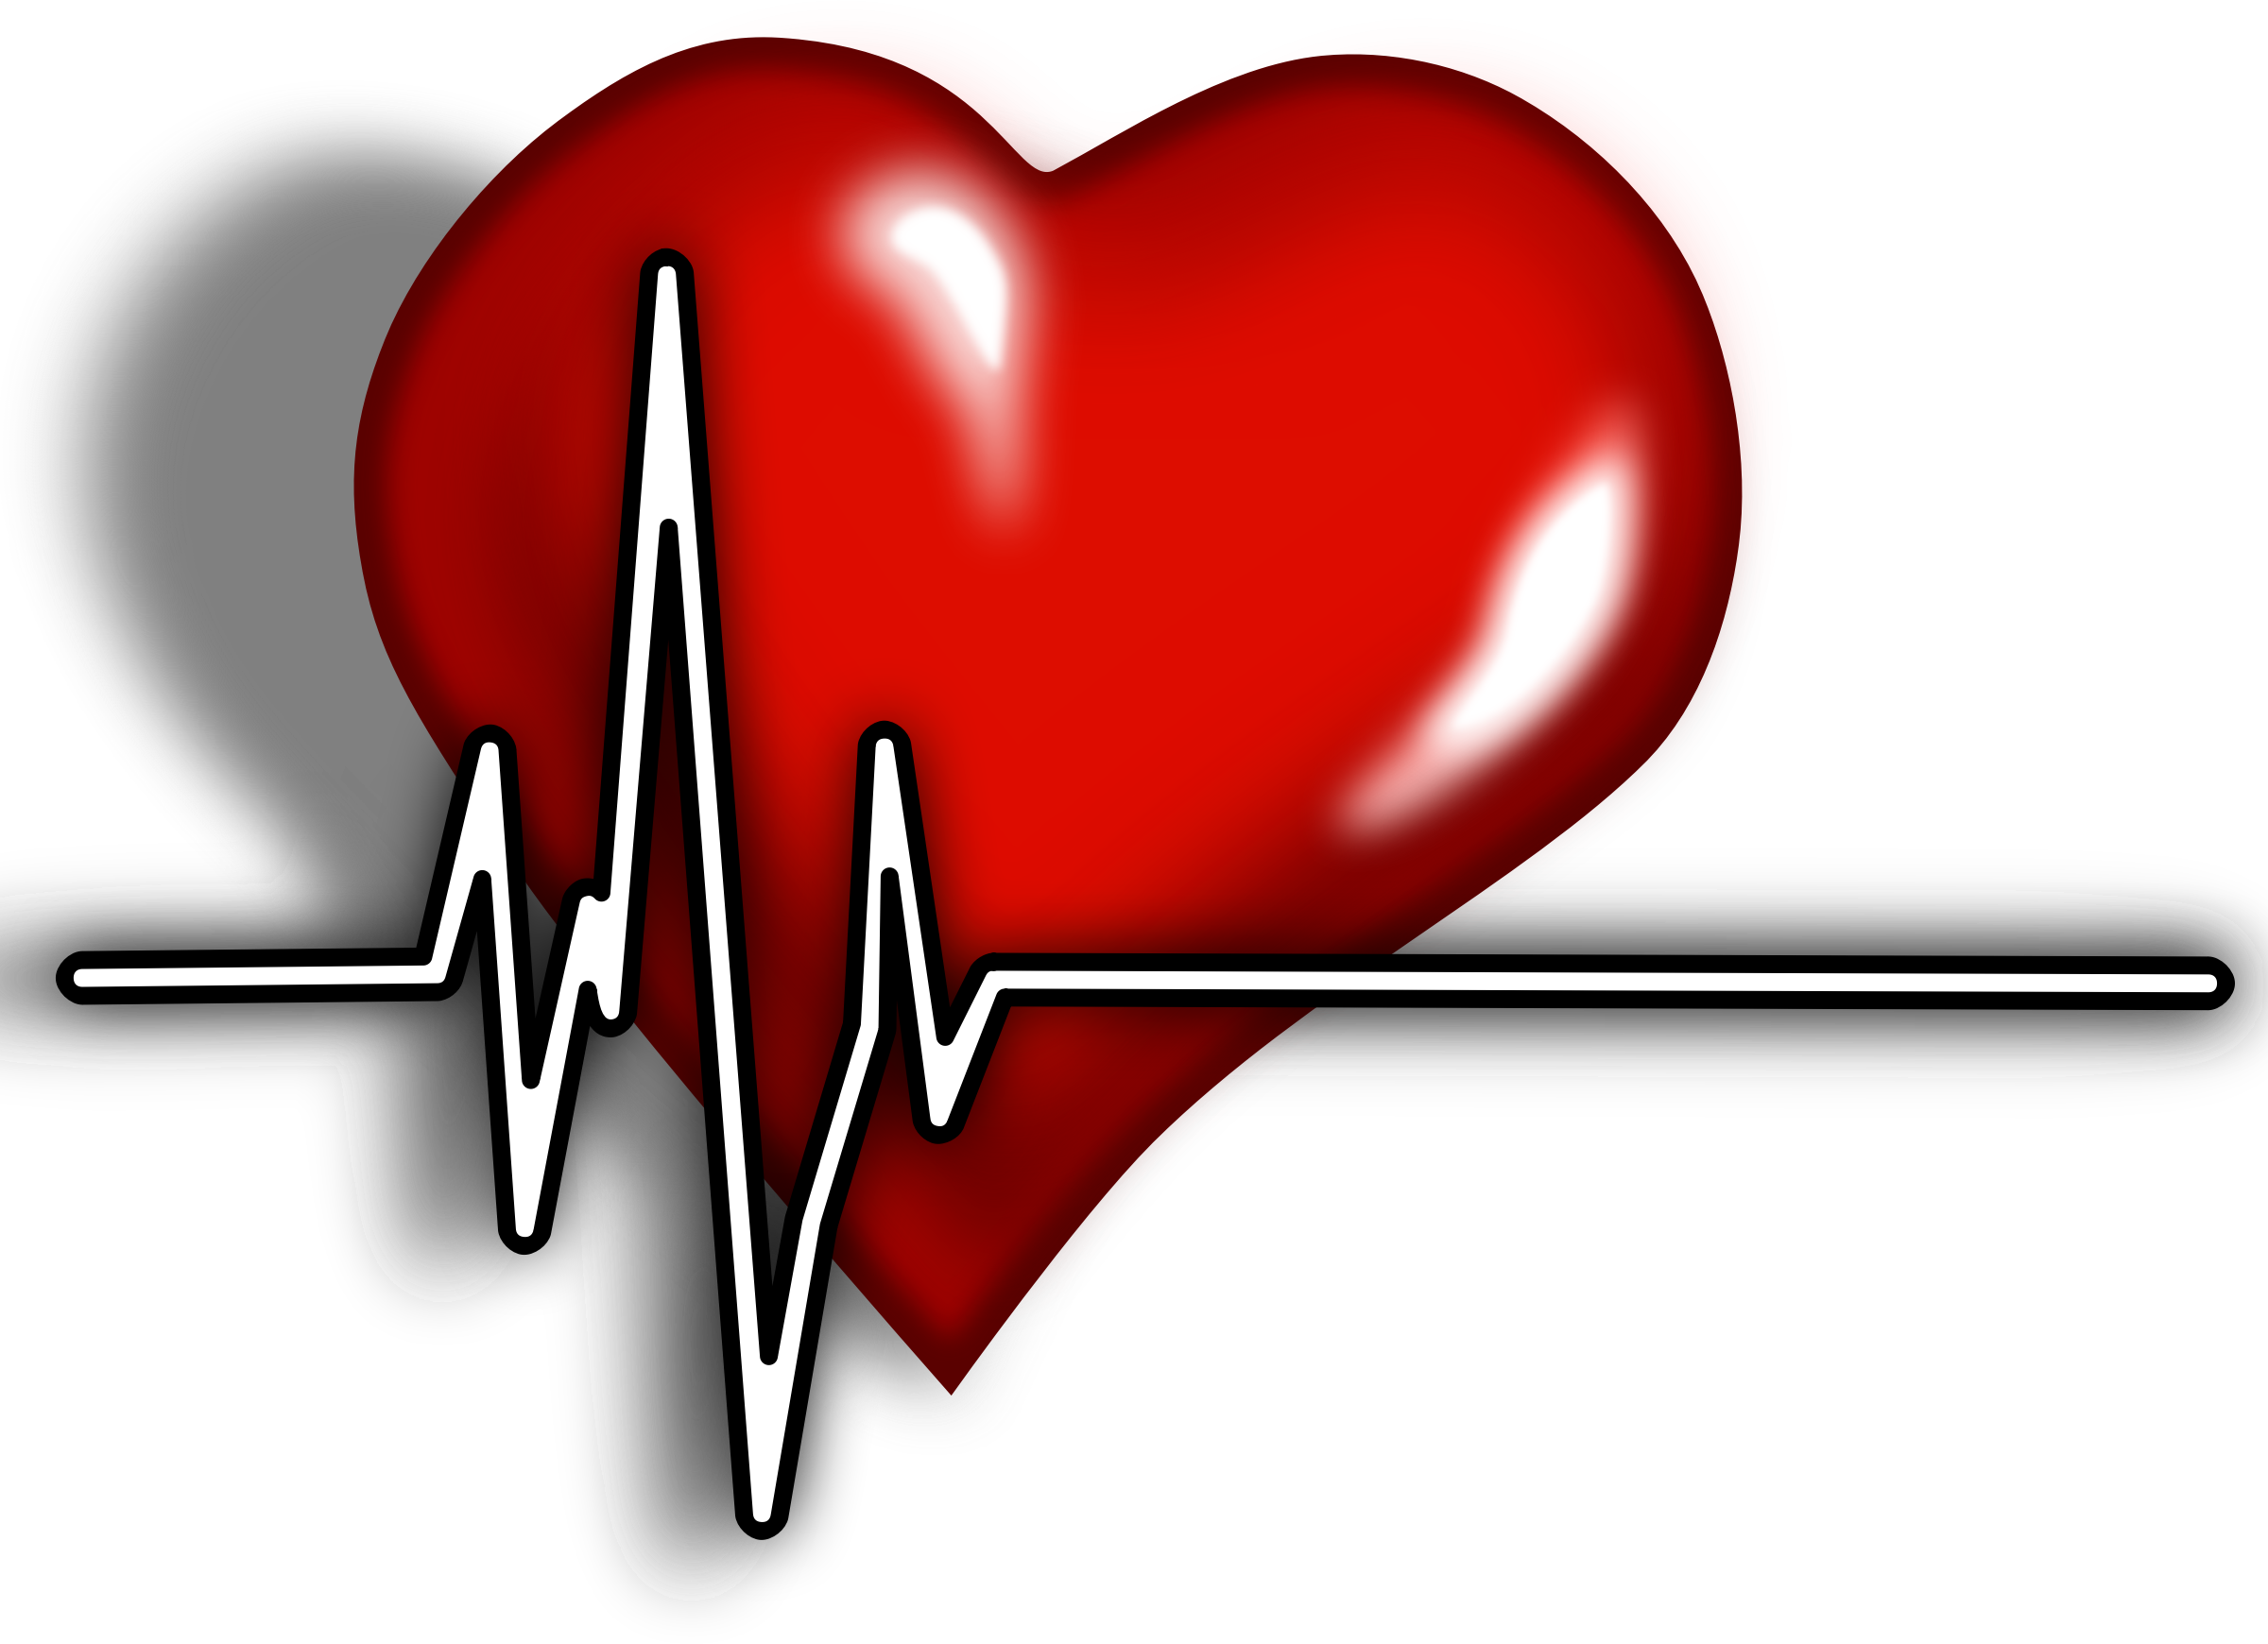 Heart with ekg line clipart black and white EKG Heart Clip Art free image black and white